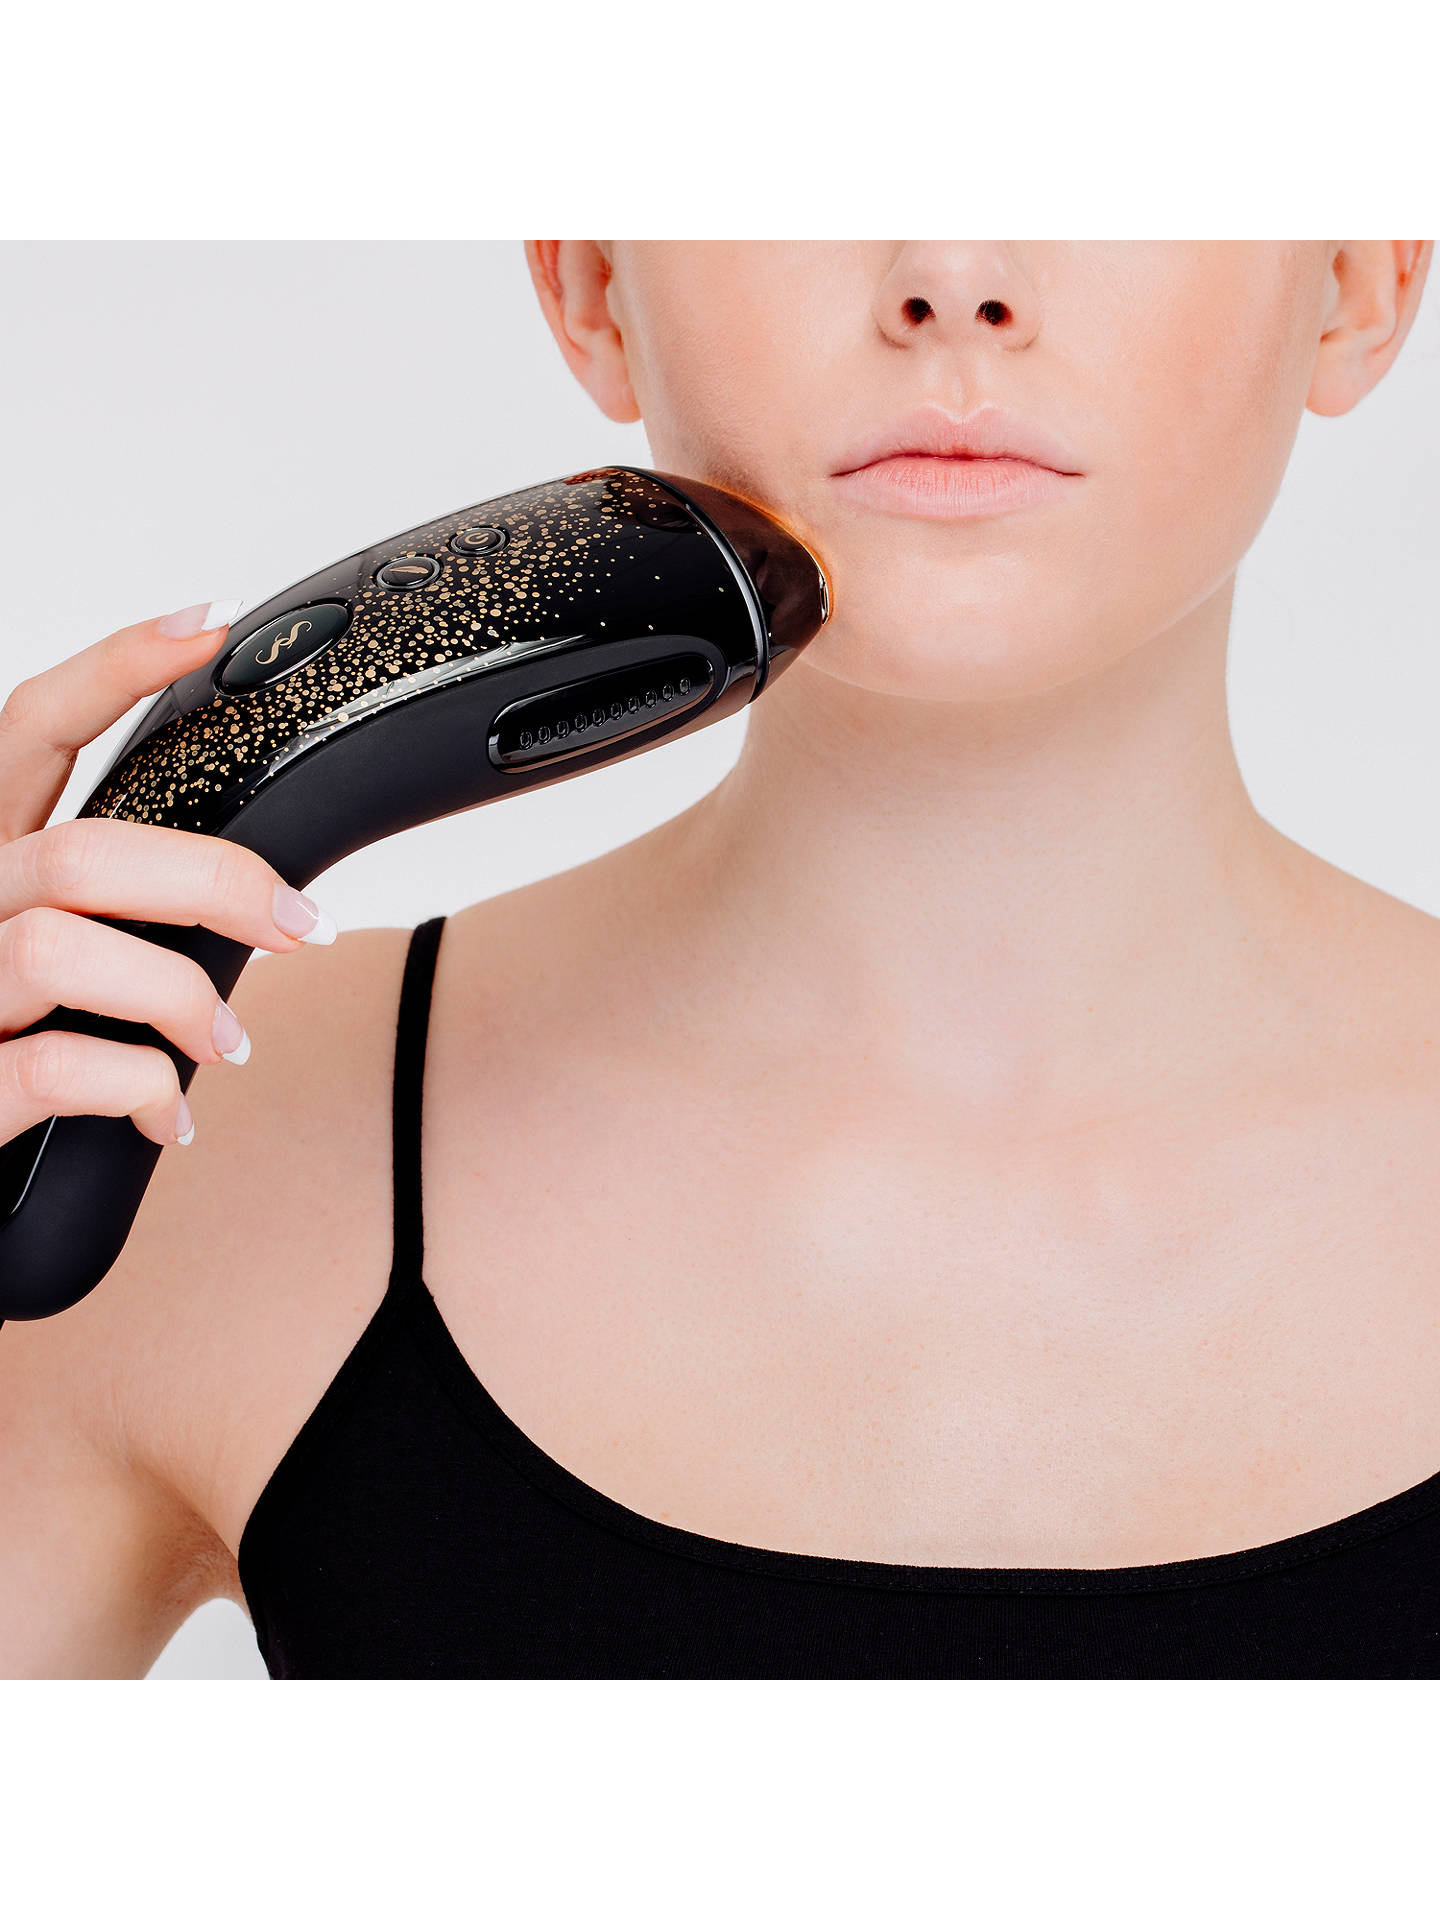 BuySmoothSkin Muse IPL Hair Removal, Black / Gold Online at johnlewis.com